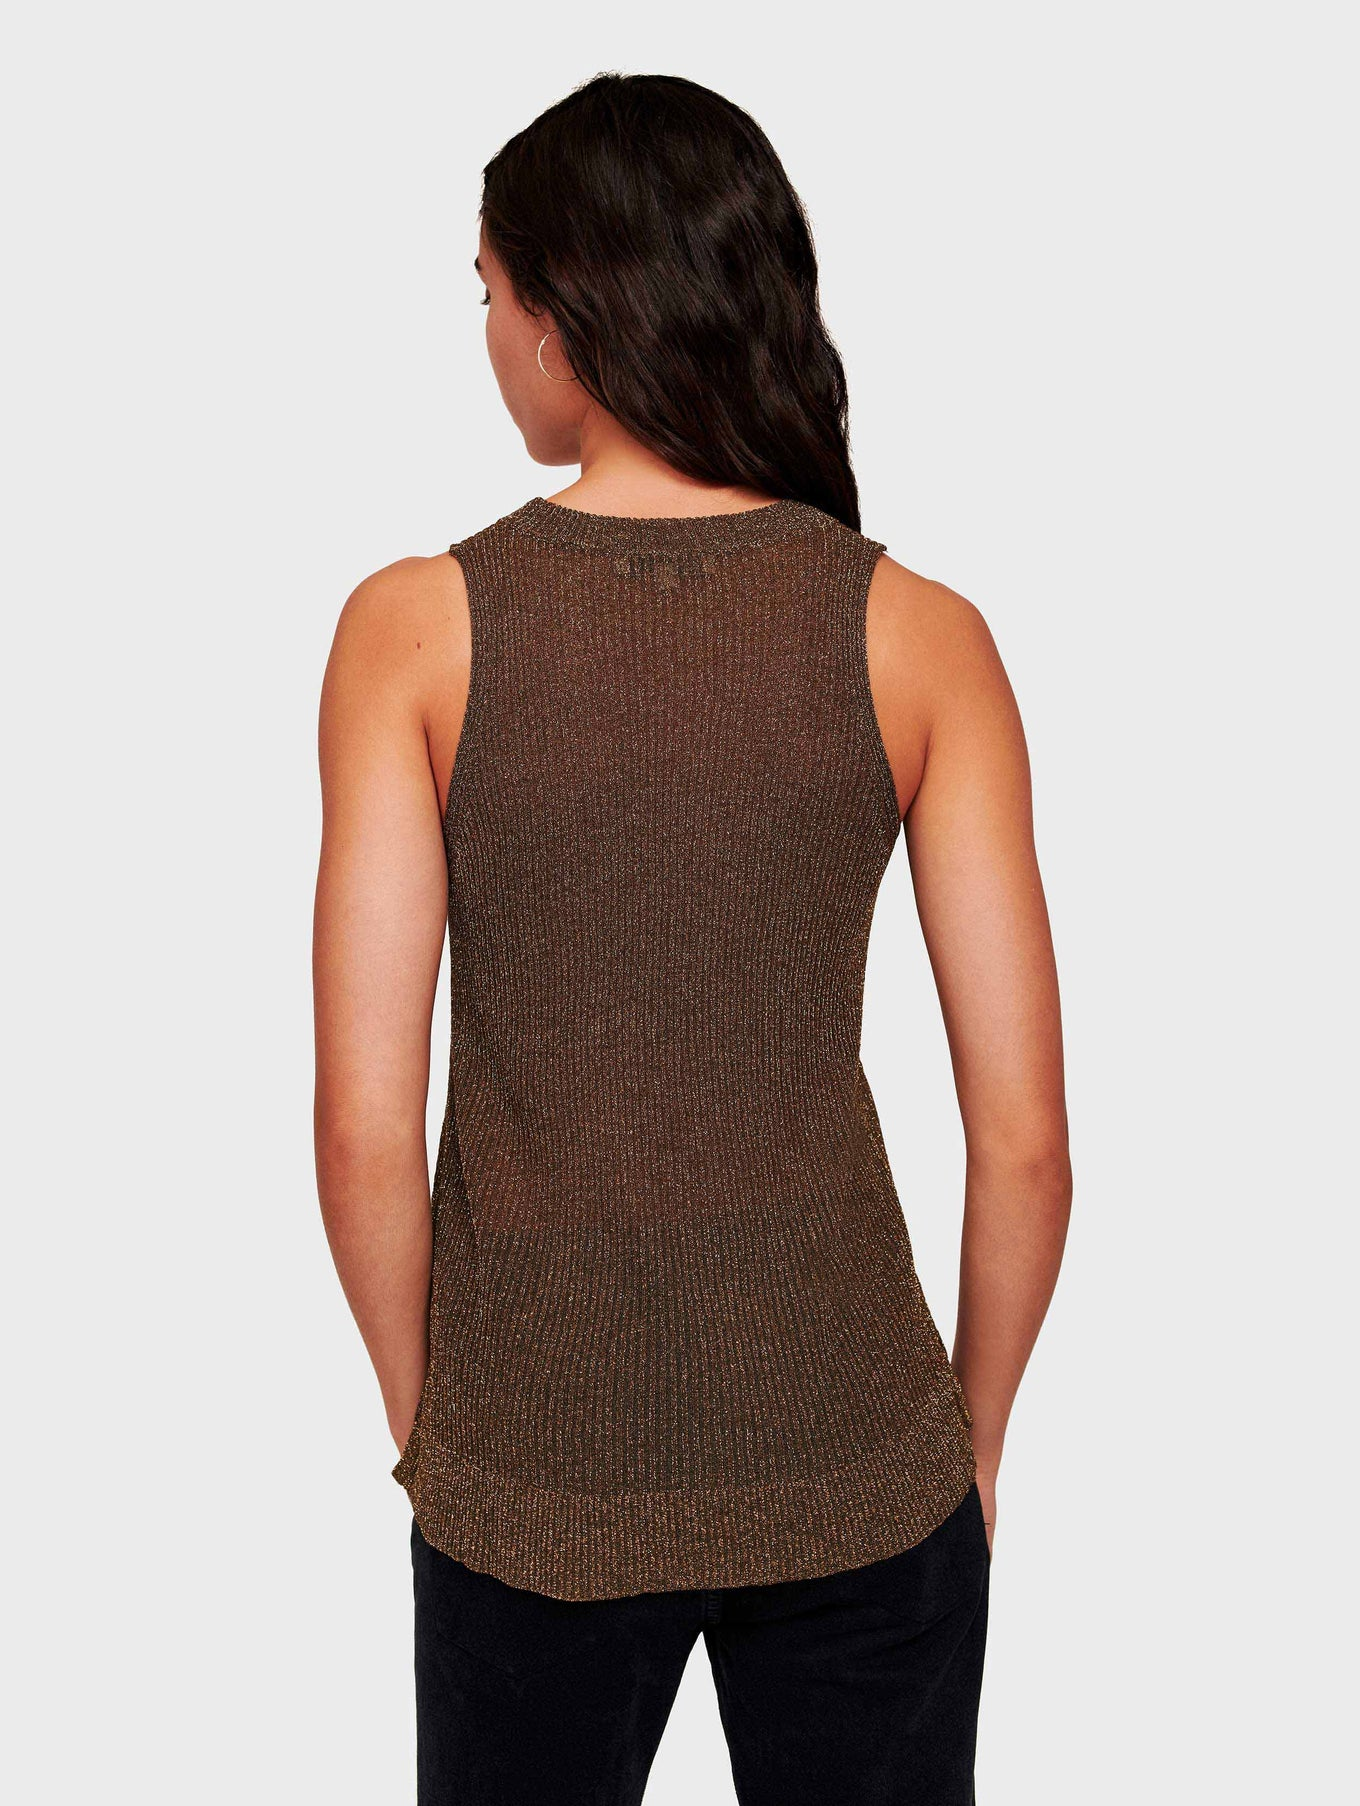 Italian Summer Shine Ribbed Tank - Metallic Bronze - Image 3